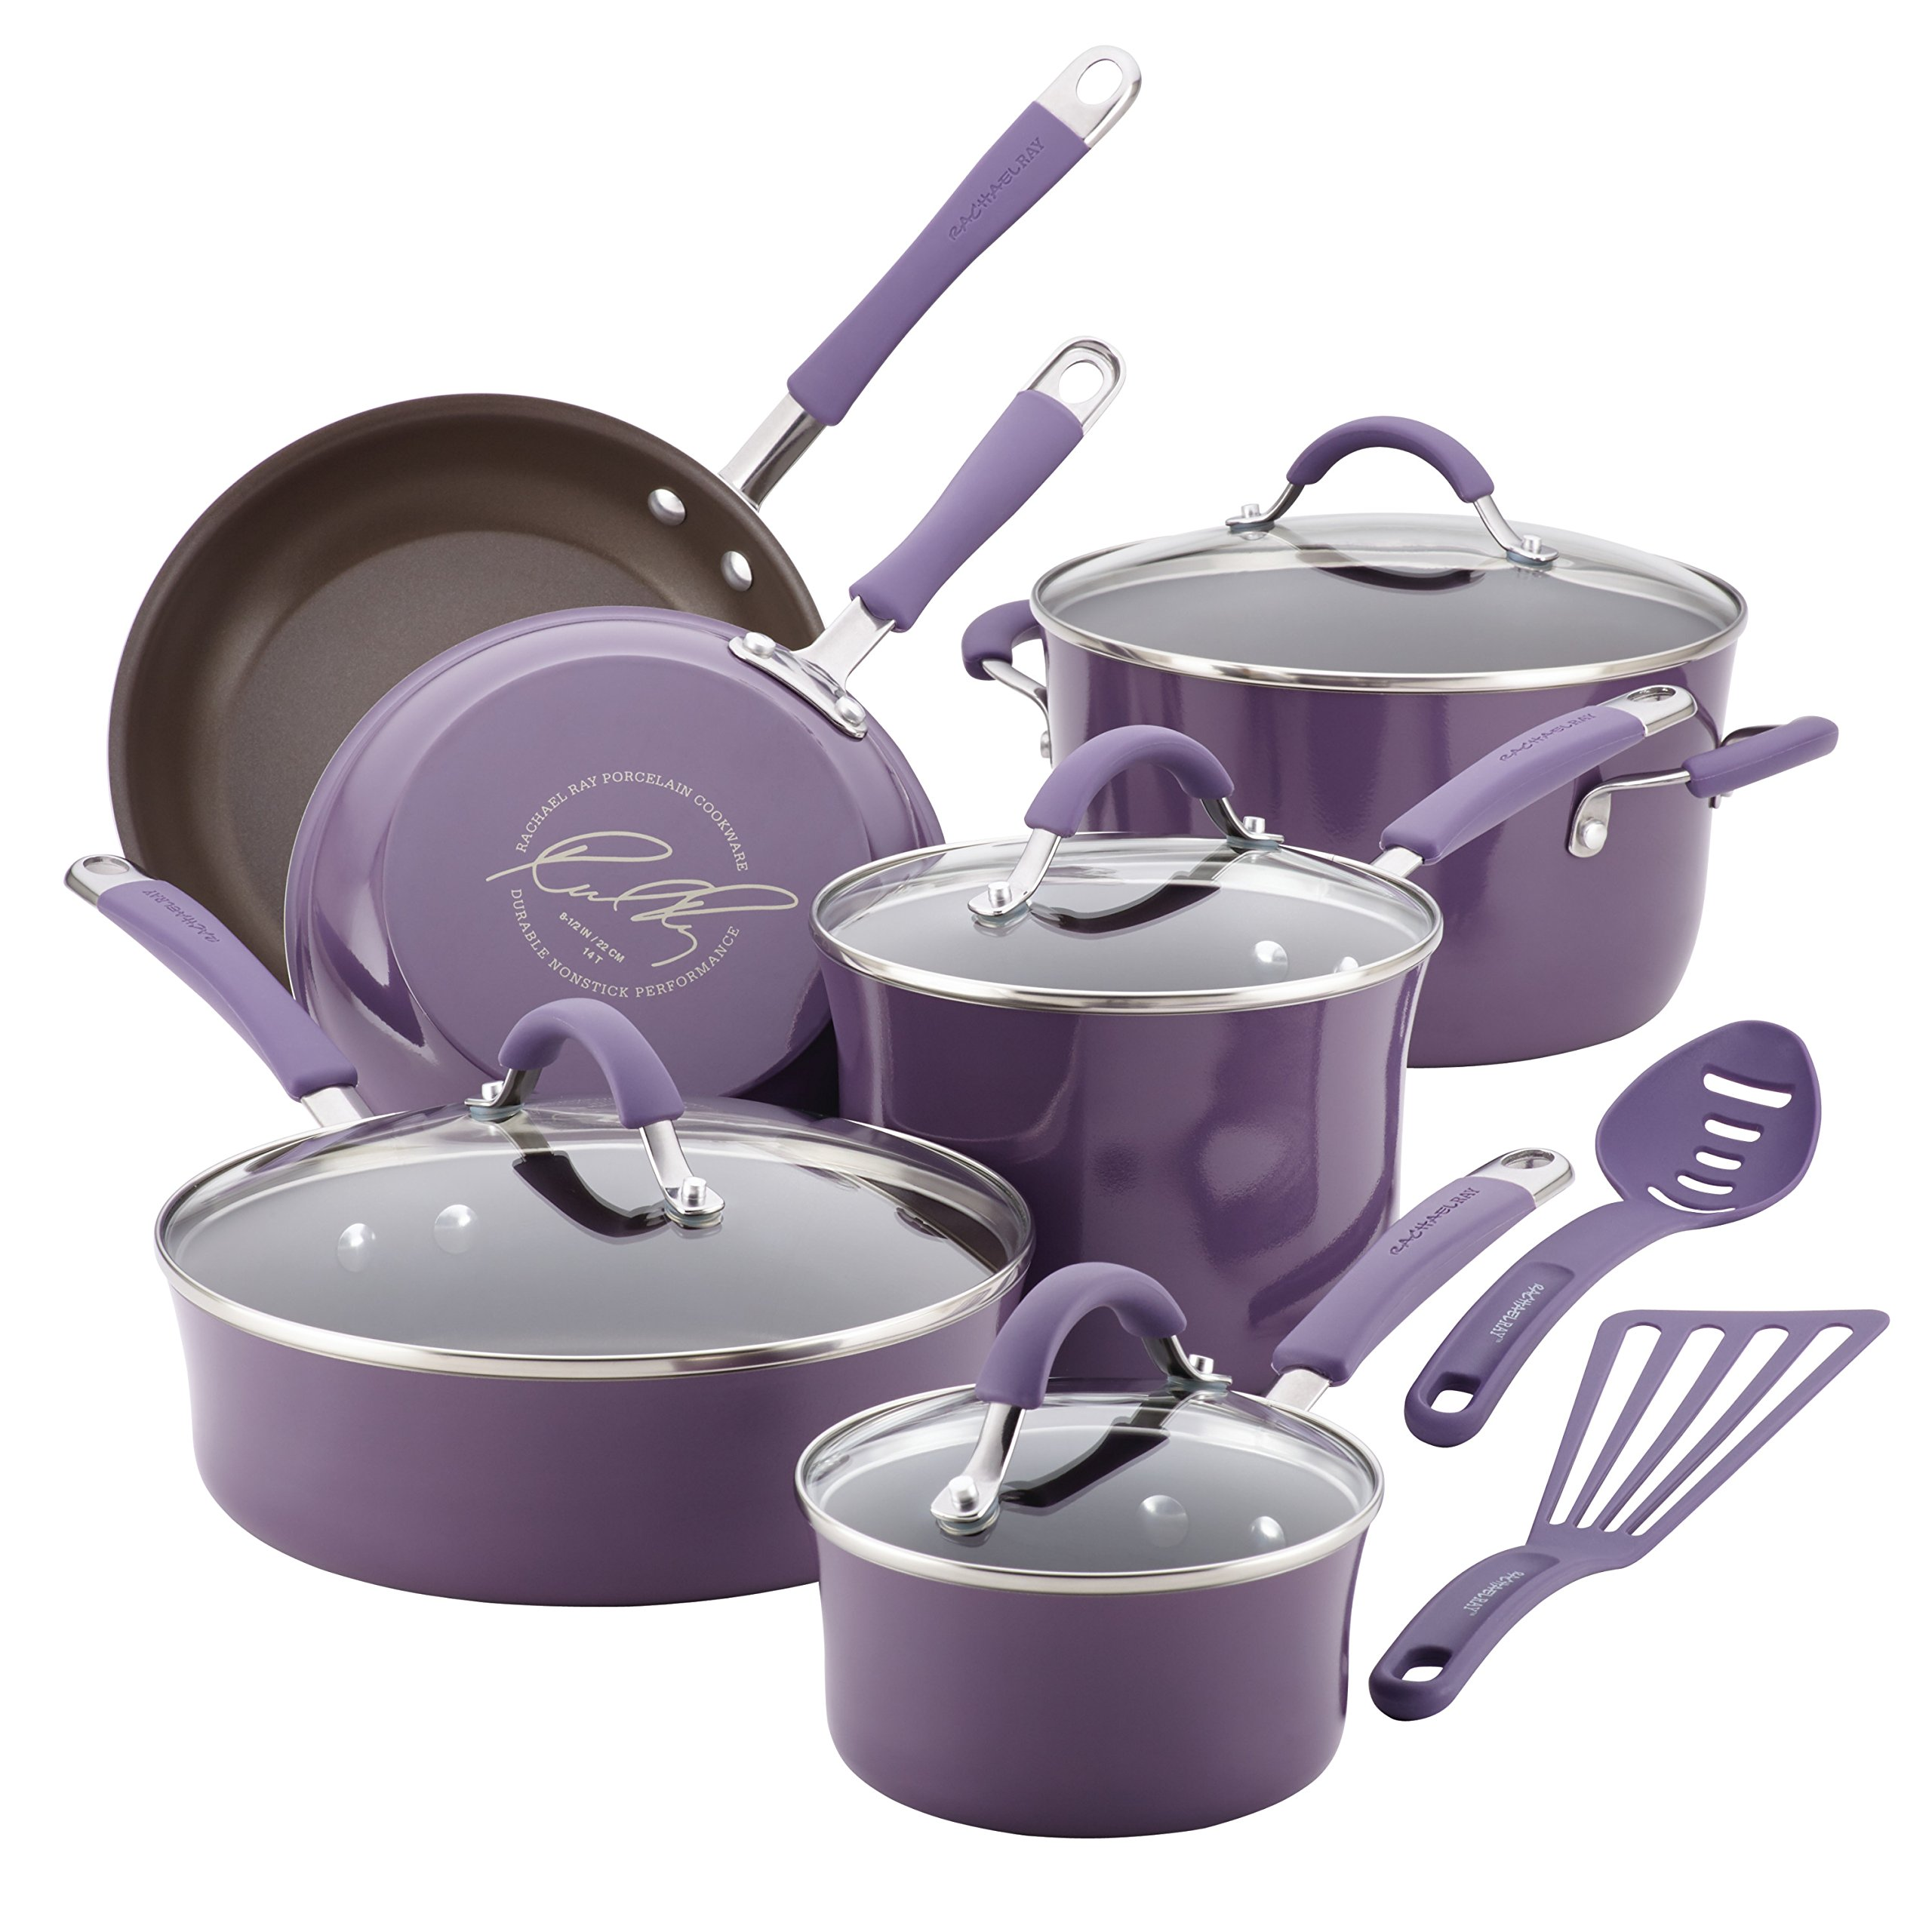 Rachael Ray Cucina Hard Porcelain Enamel Nonstick Cookware Set, 12-Piece, Lavender Purple by Rachael Ray